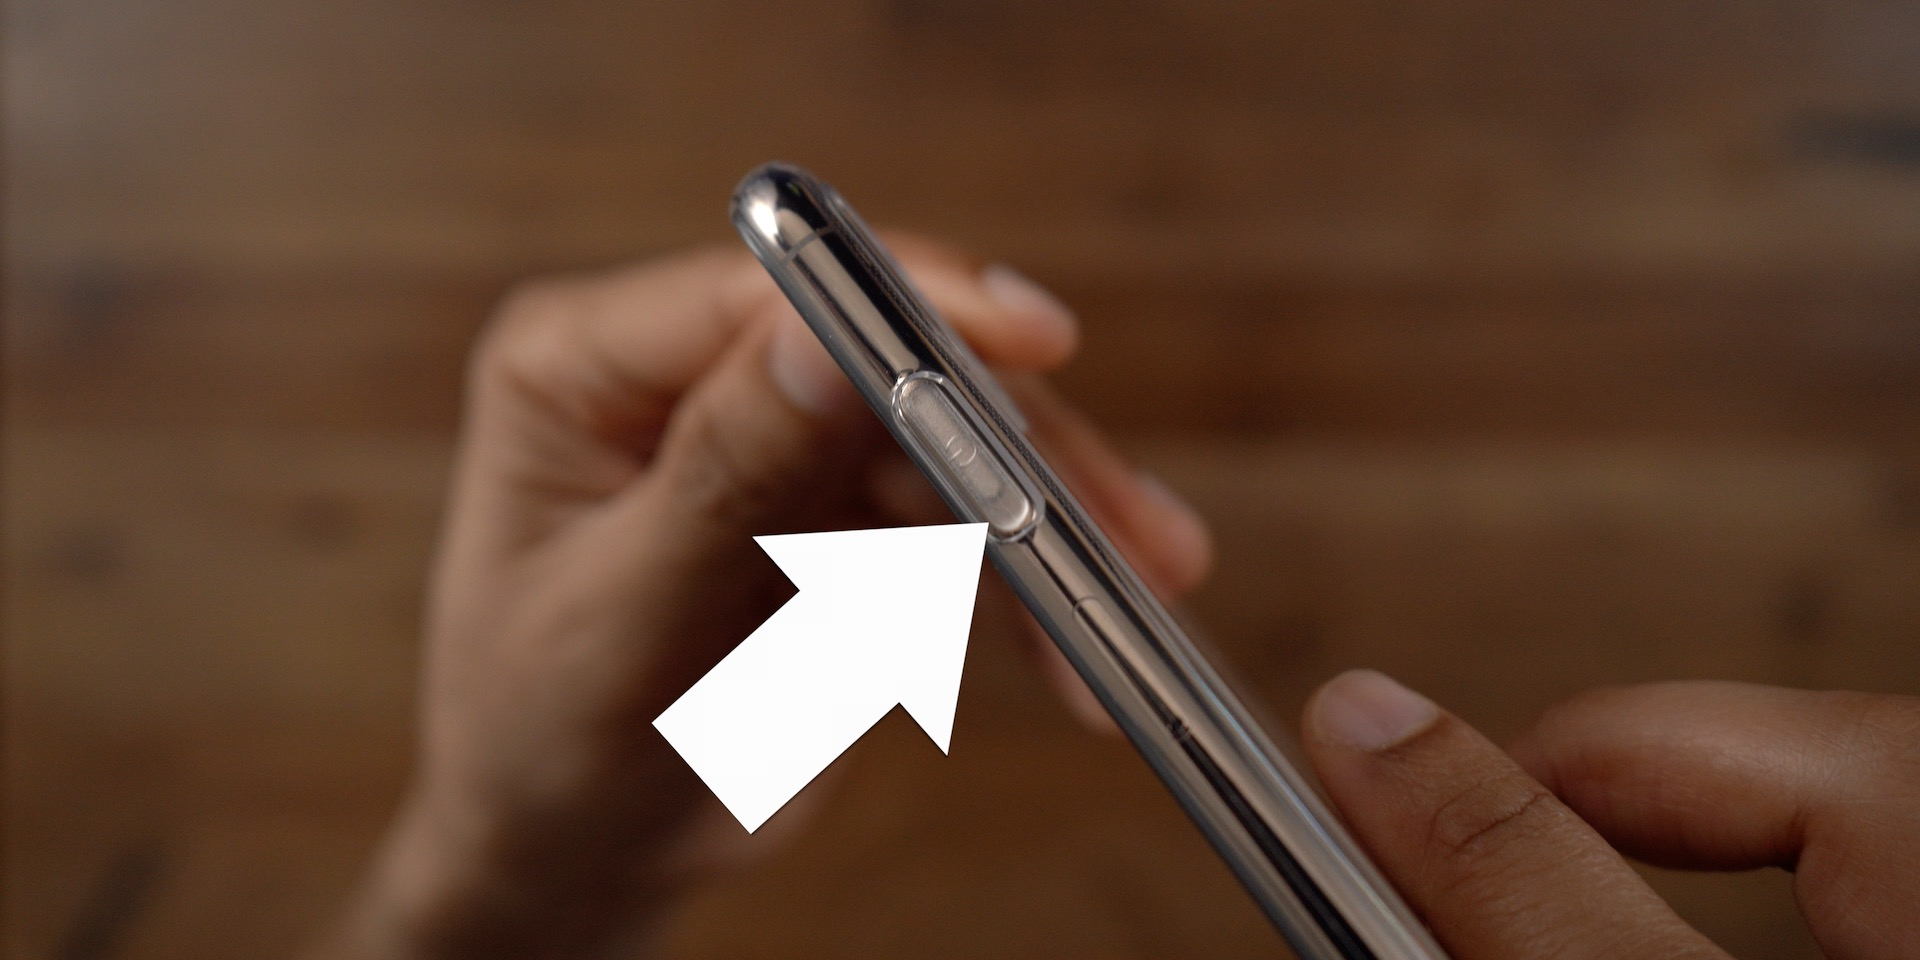 iPhone 11 Max Side button alignment